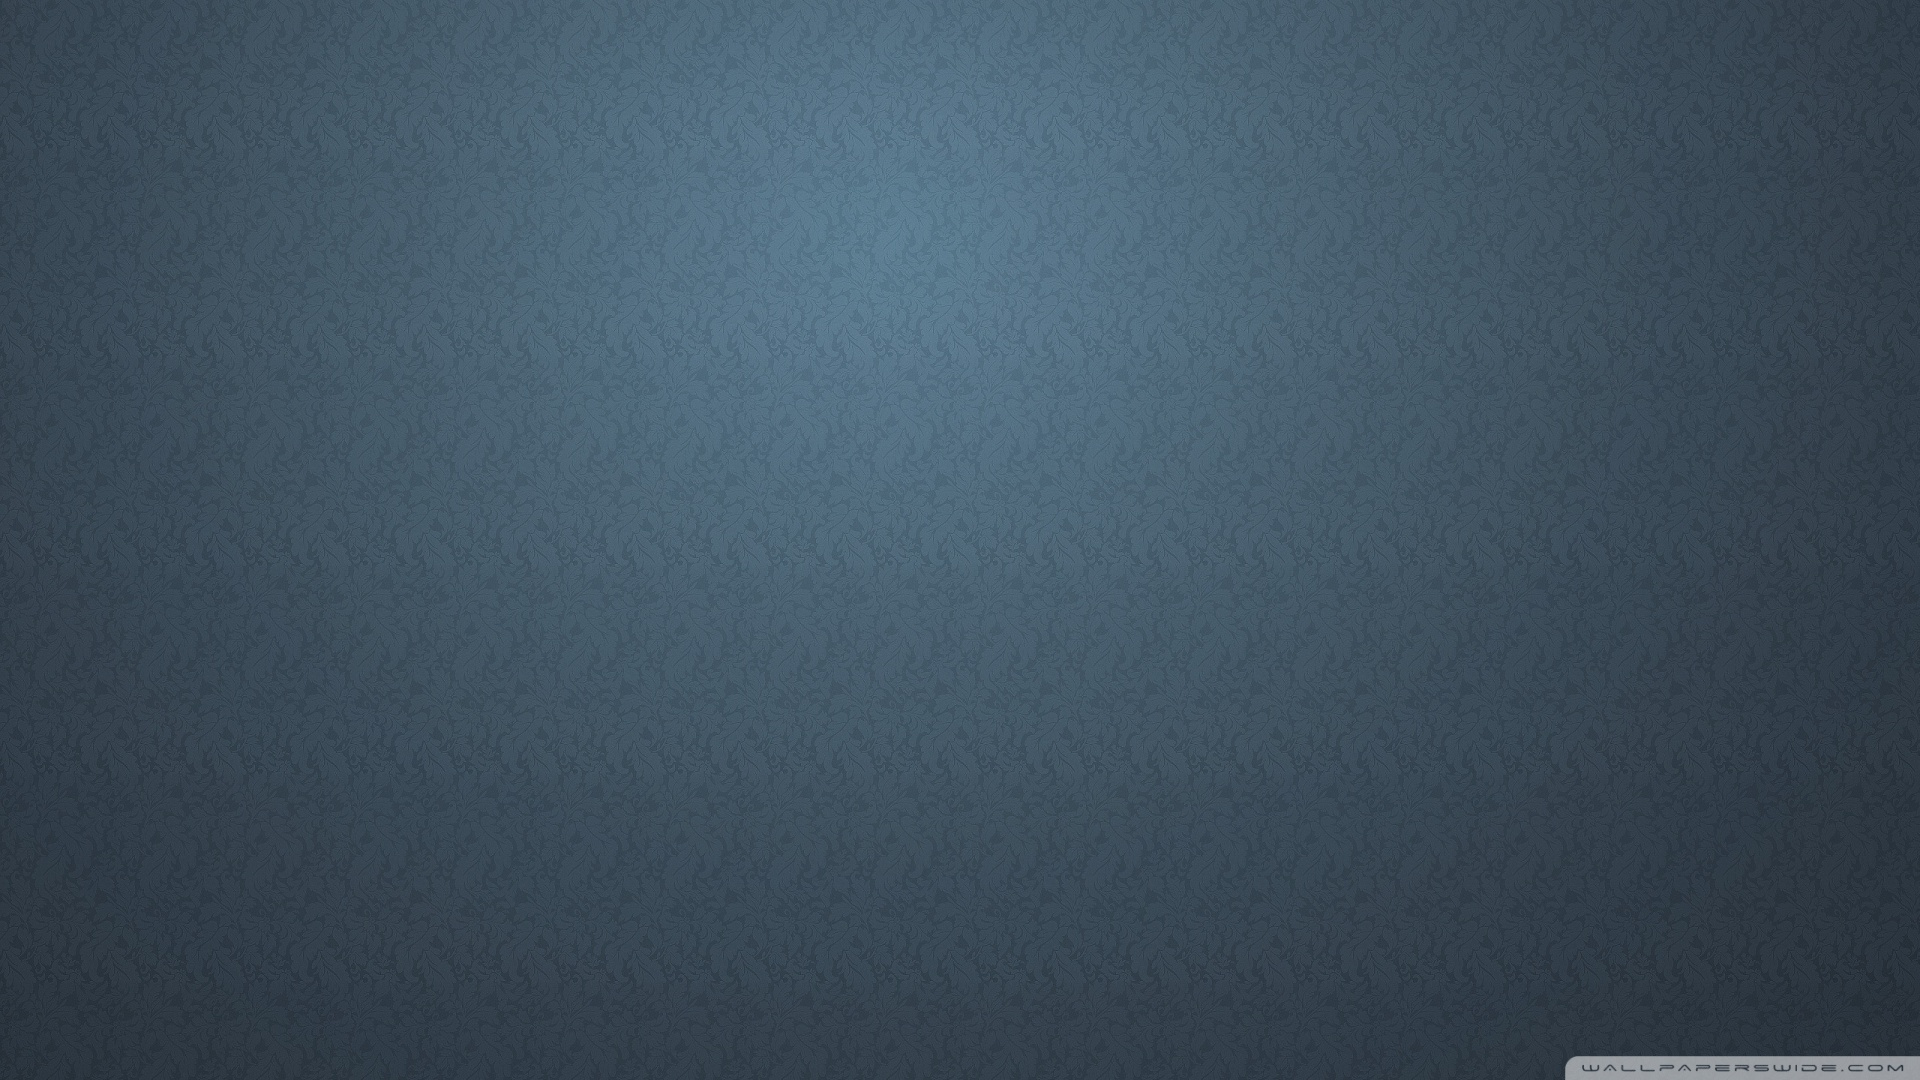 Blue Gray Color blue gray wallpaper - wallpapersafari